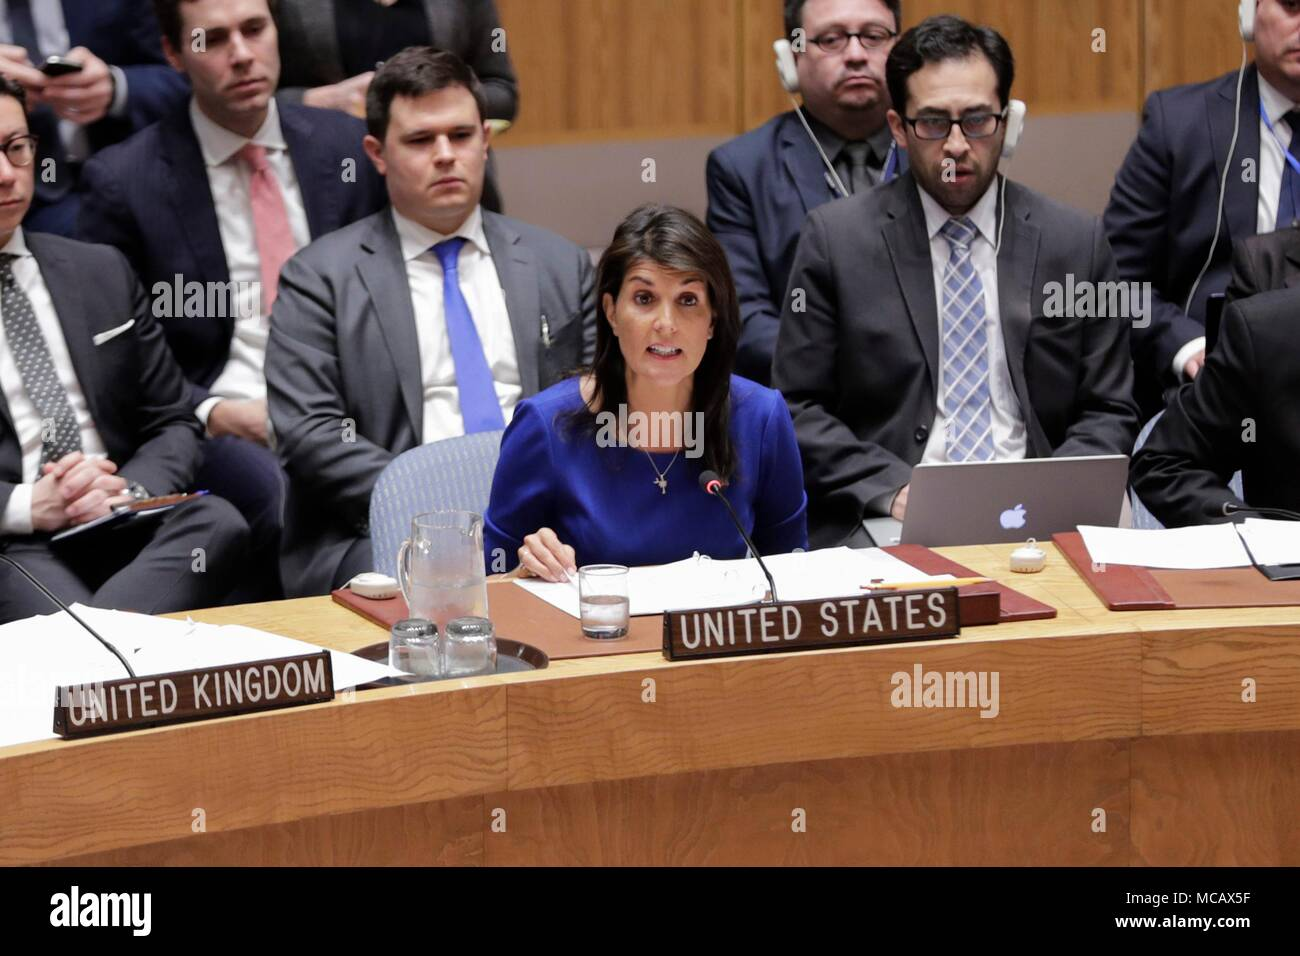 United Nations, New York, USA, April 14 2018 - U.S. Ambassador to the United Nations Nikki Haley during a Security Council meeting on the situation in Syria after air strikes carried out by France, the United Kigdom and the United States today at the UN Headquarters in New York City. Photo: Luiz Rampelotto/EuropaNewswire | usage worldwide - Stock Image